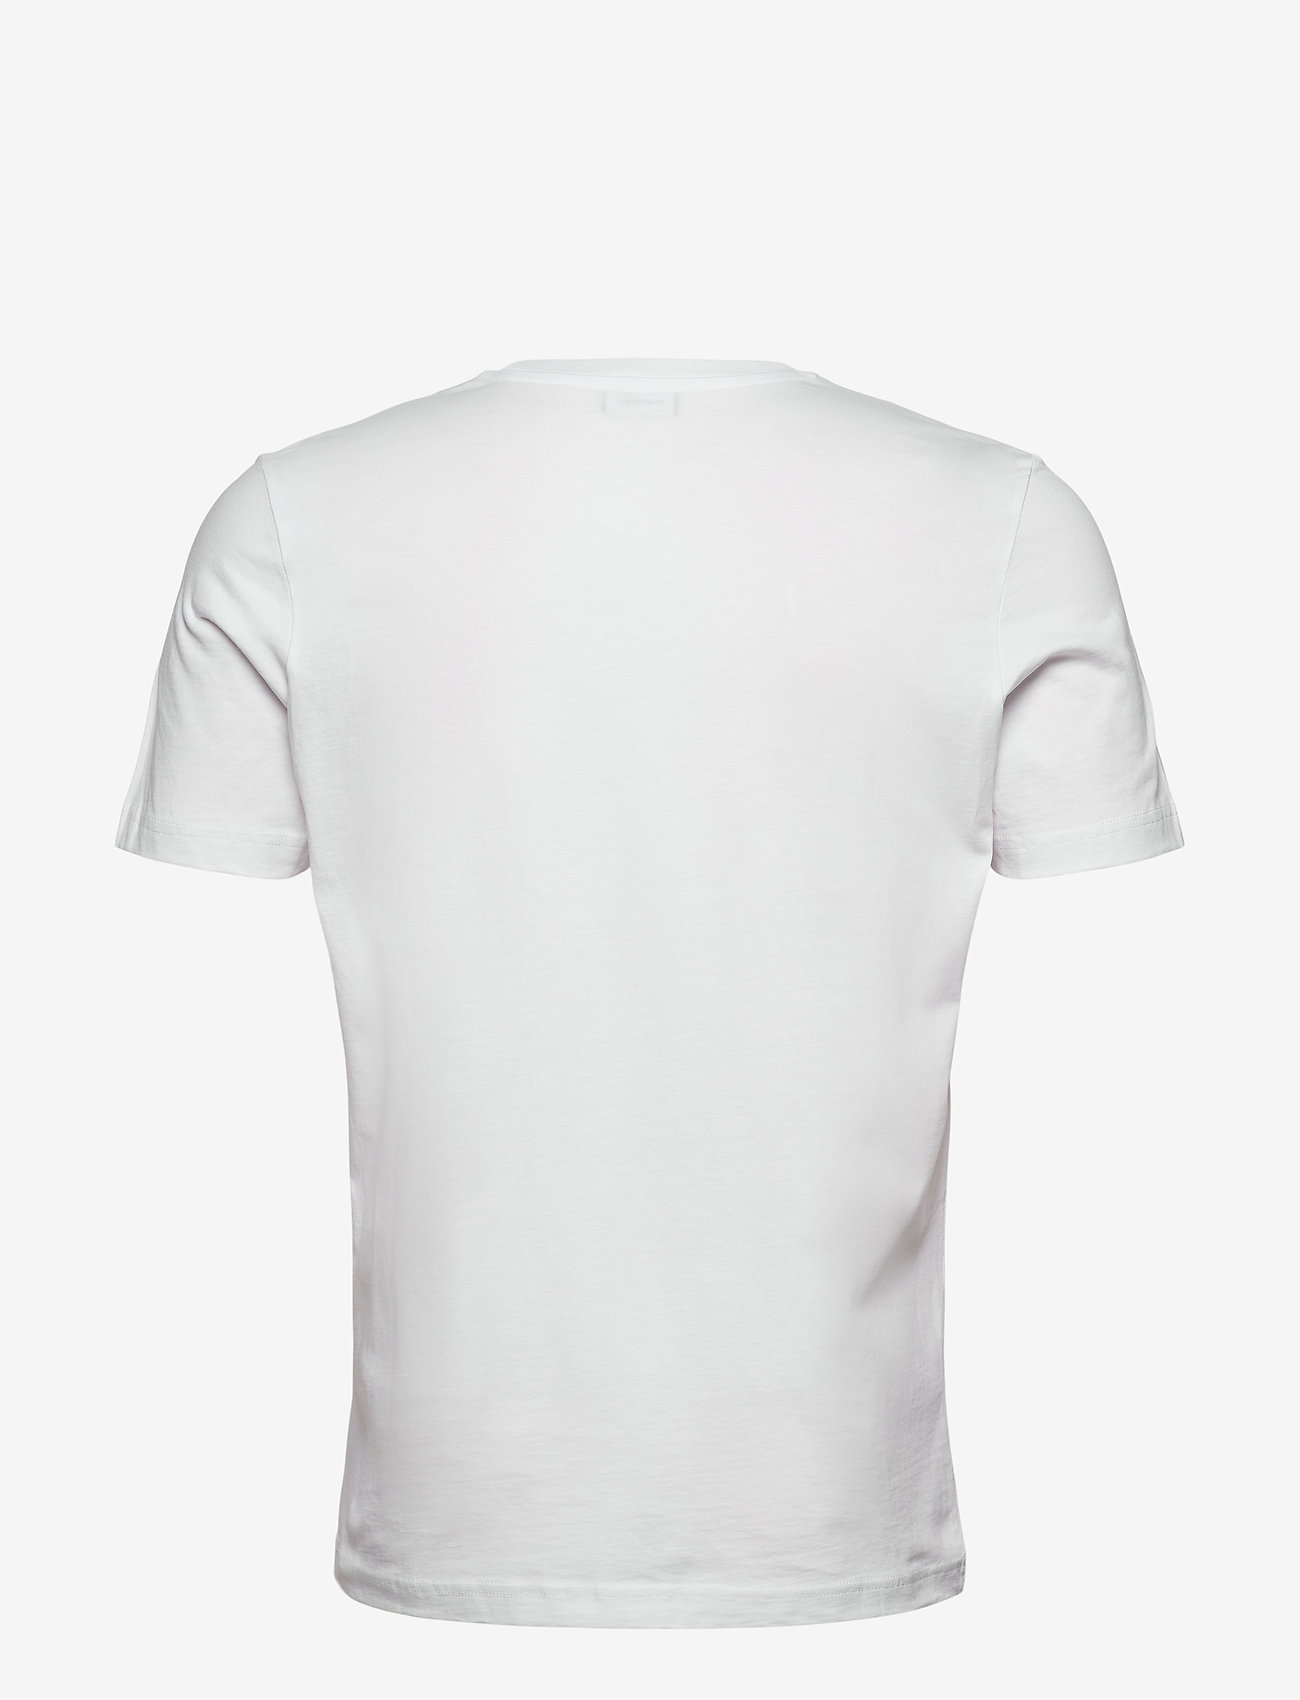 Diesel Men - T-DIEGOS-K36 T-SHIRT - basic t-shirts - white - 1